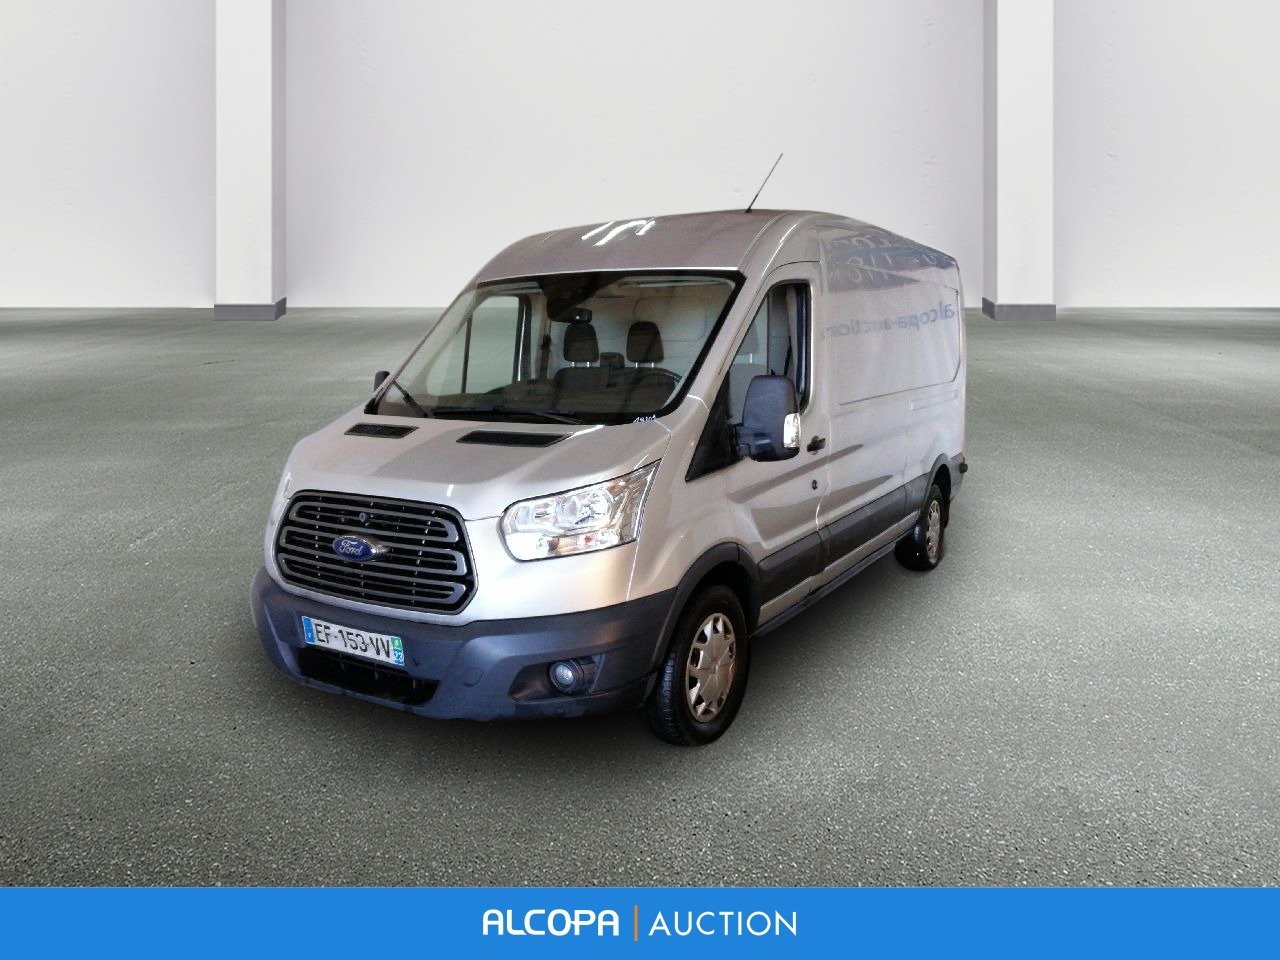 ford transit fourgon transit fourgon t350 l3h2 2 2 tdci 155 trend alcopa auction. Black Bedroom Furniture Sets. Home Design Ideas